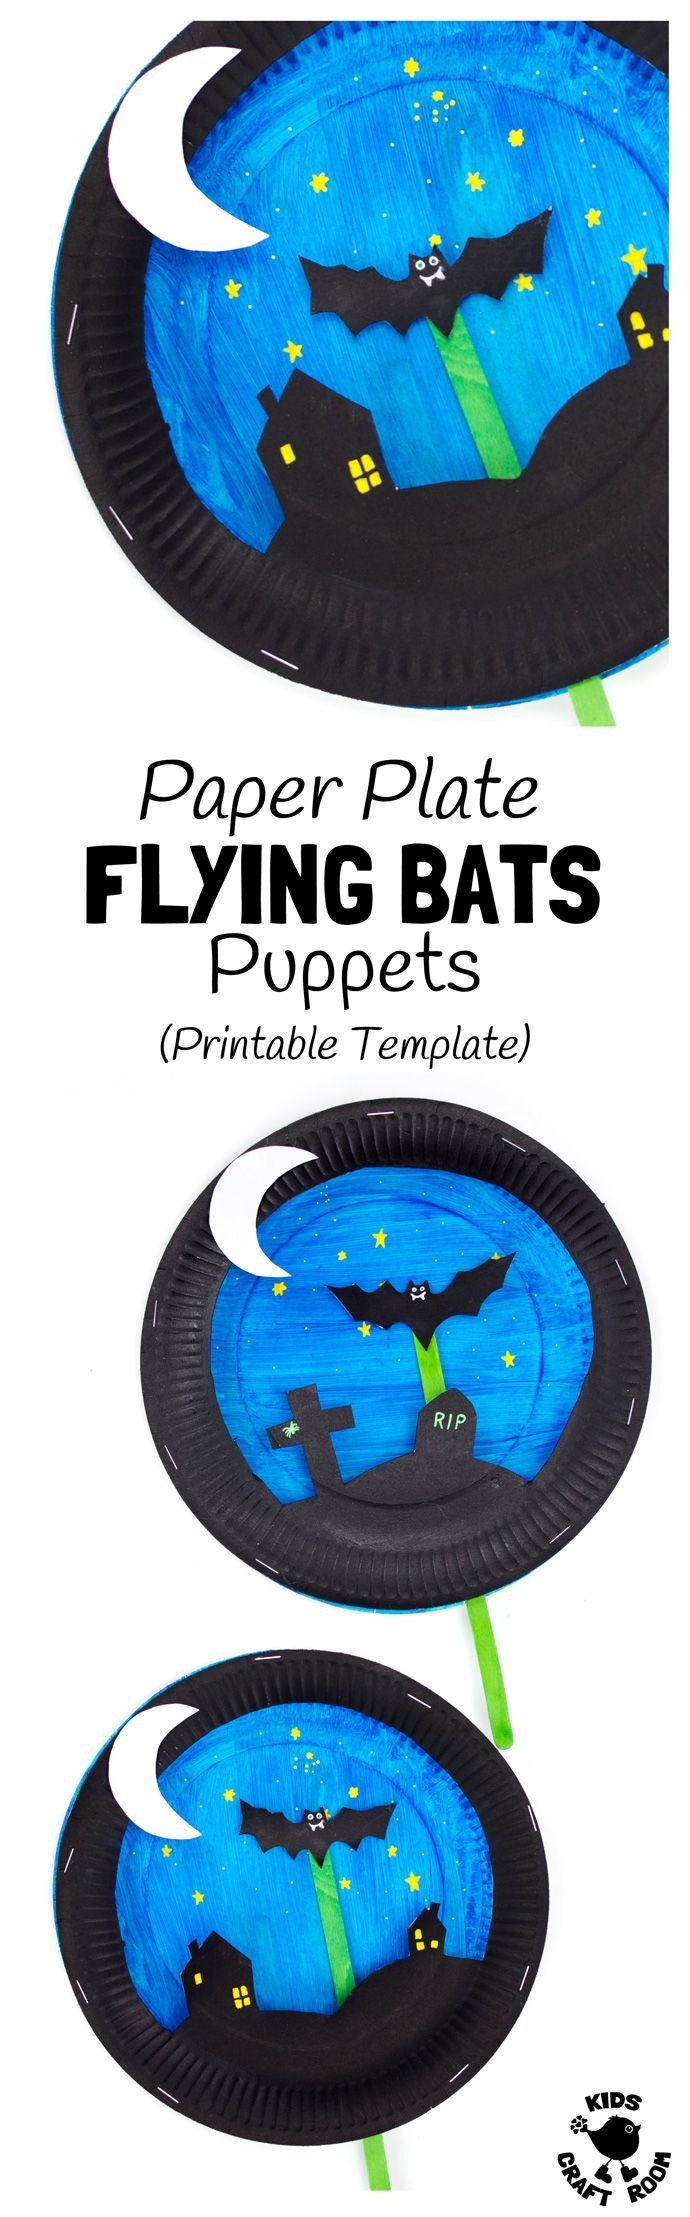 paper plate puppets templates - best 25 paper crafting ideas on pinterest diy paper